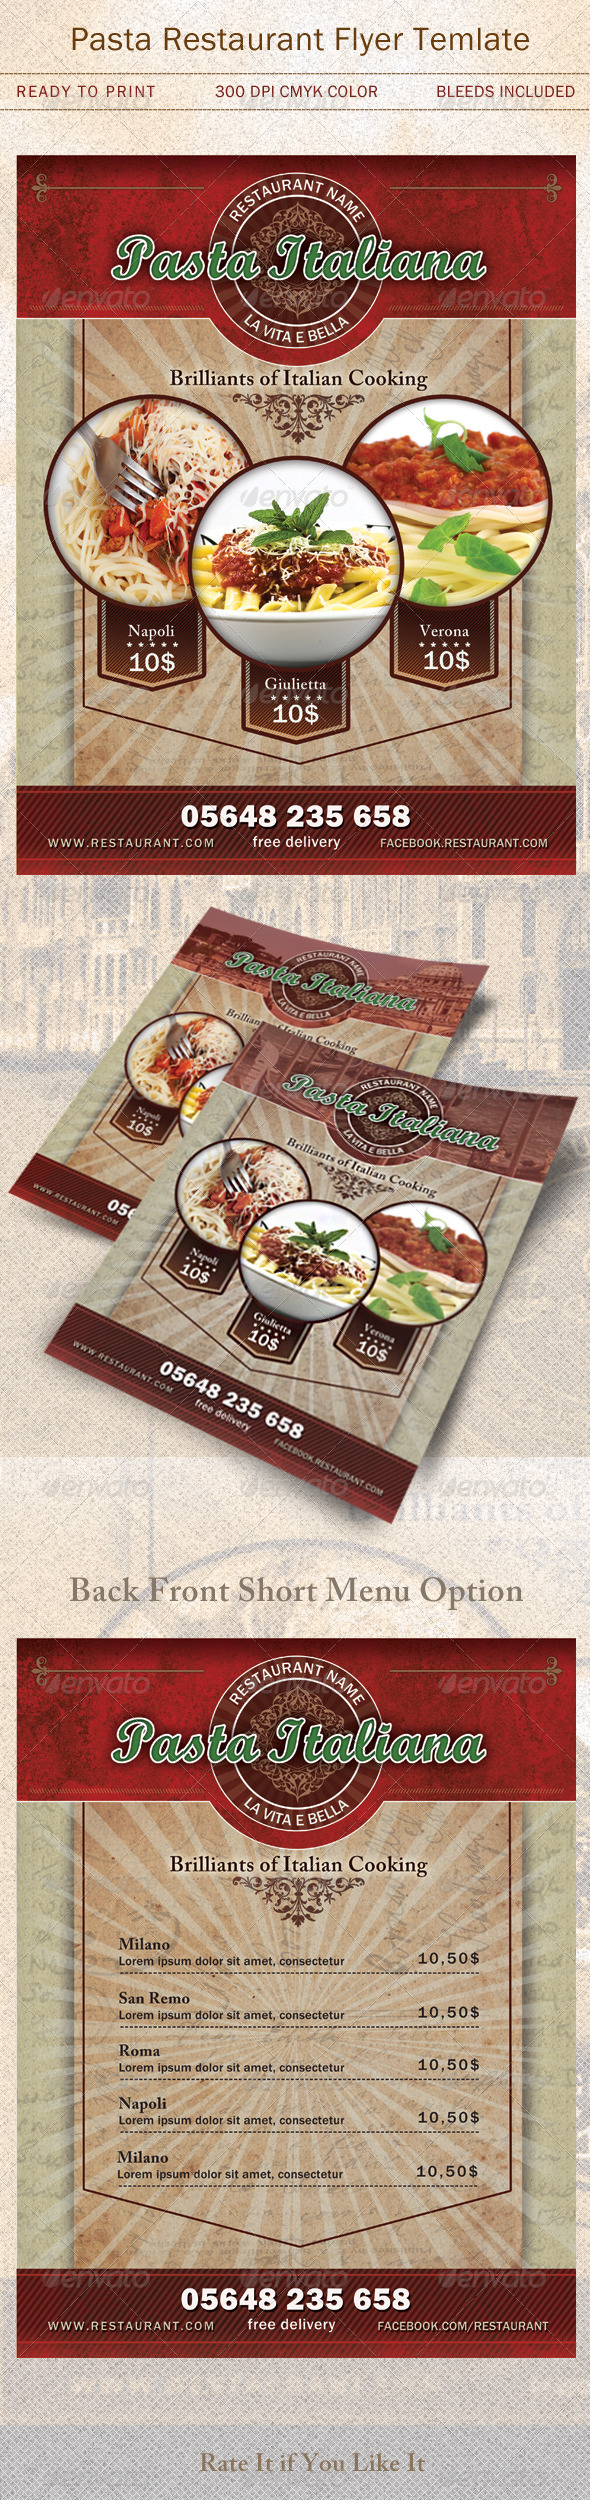 Pasta Restaurant Flyer Template - Restaurant Flyers